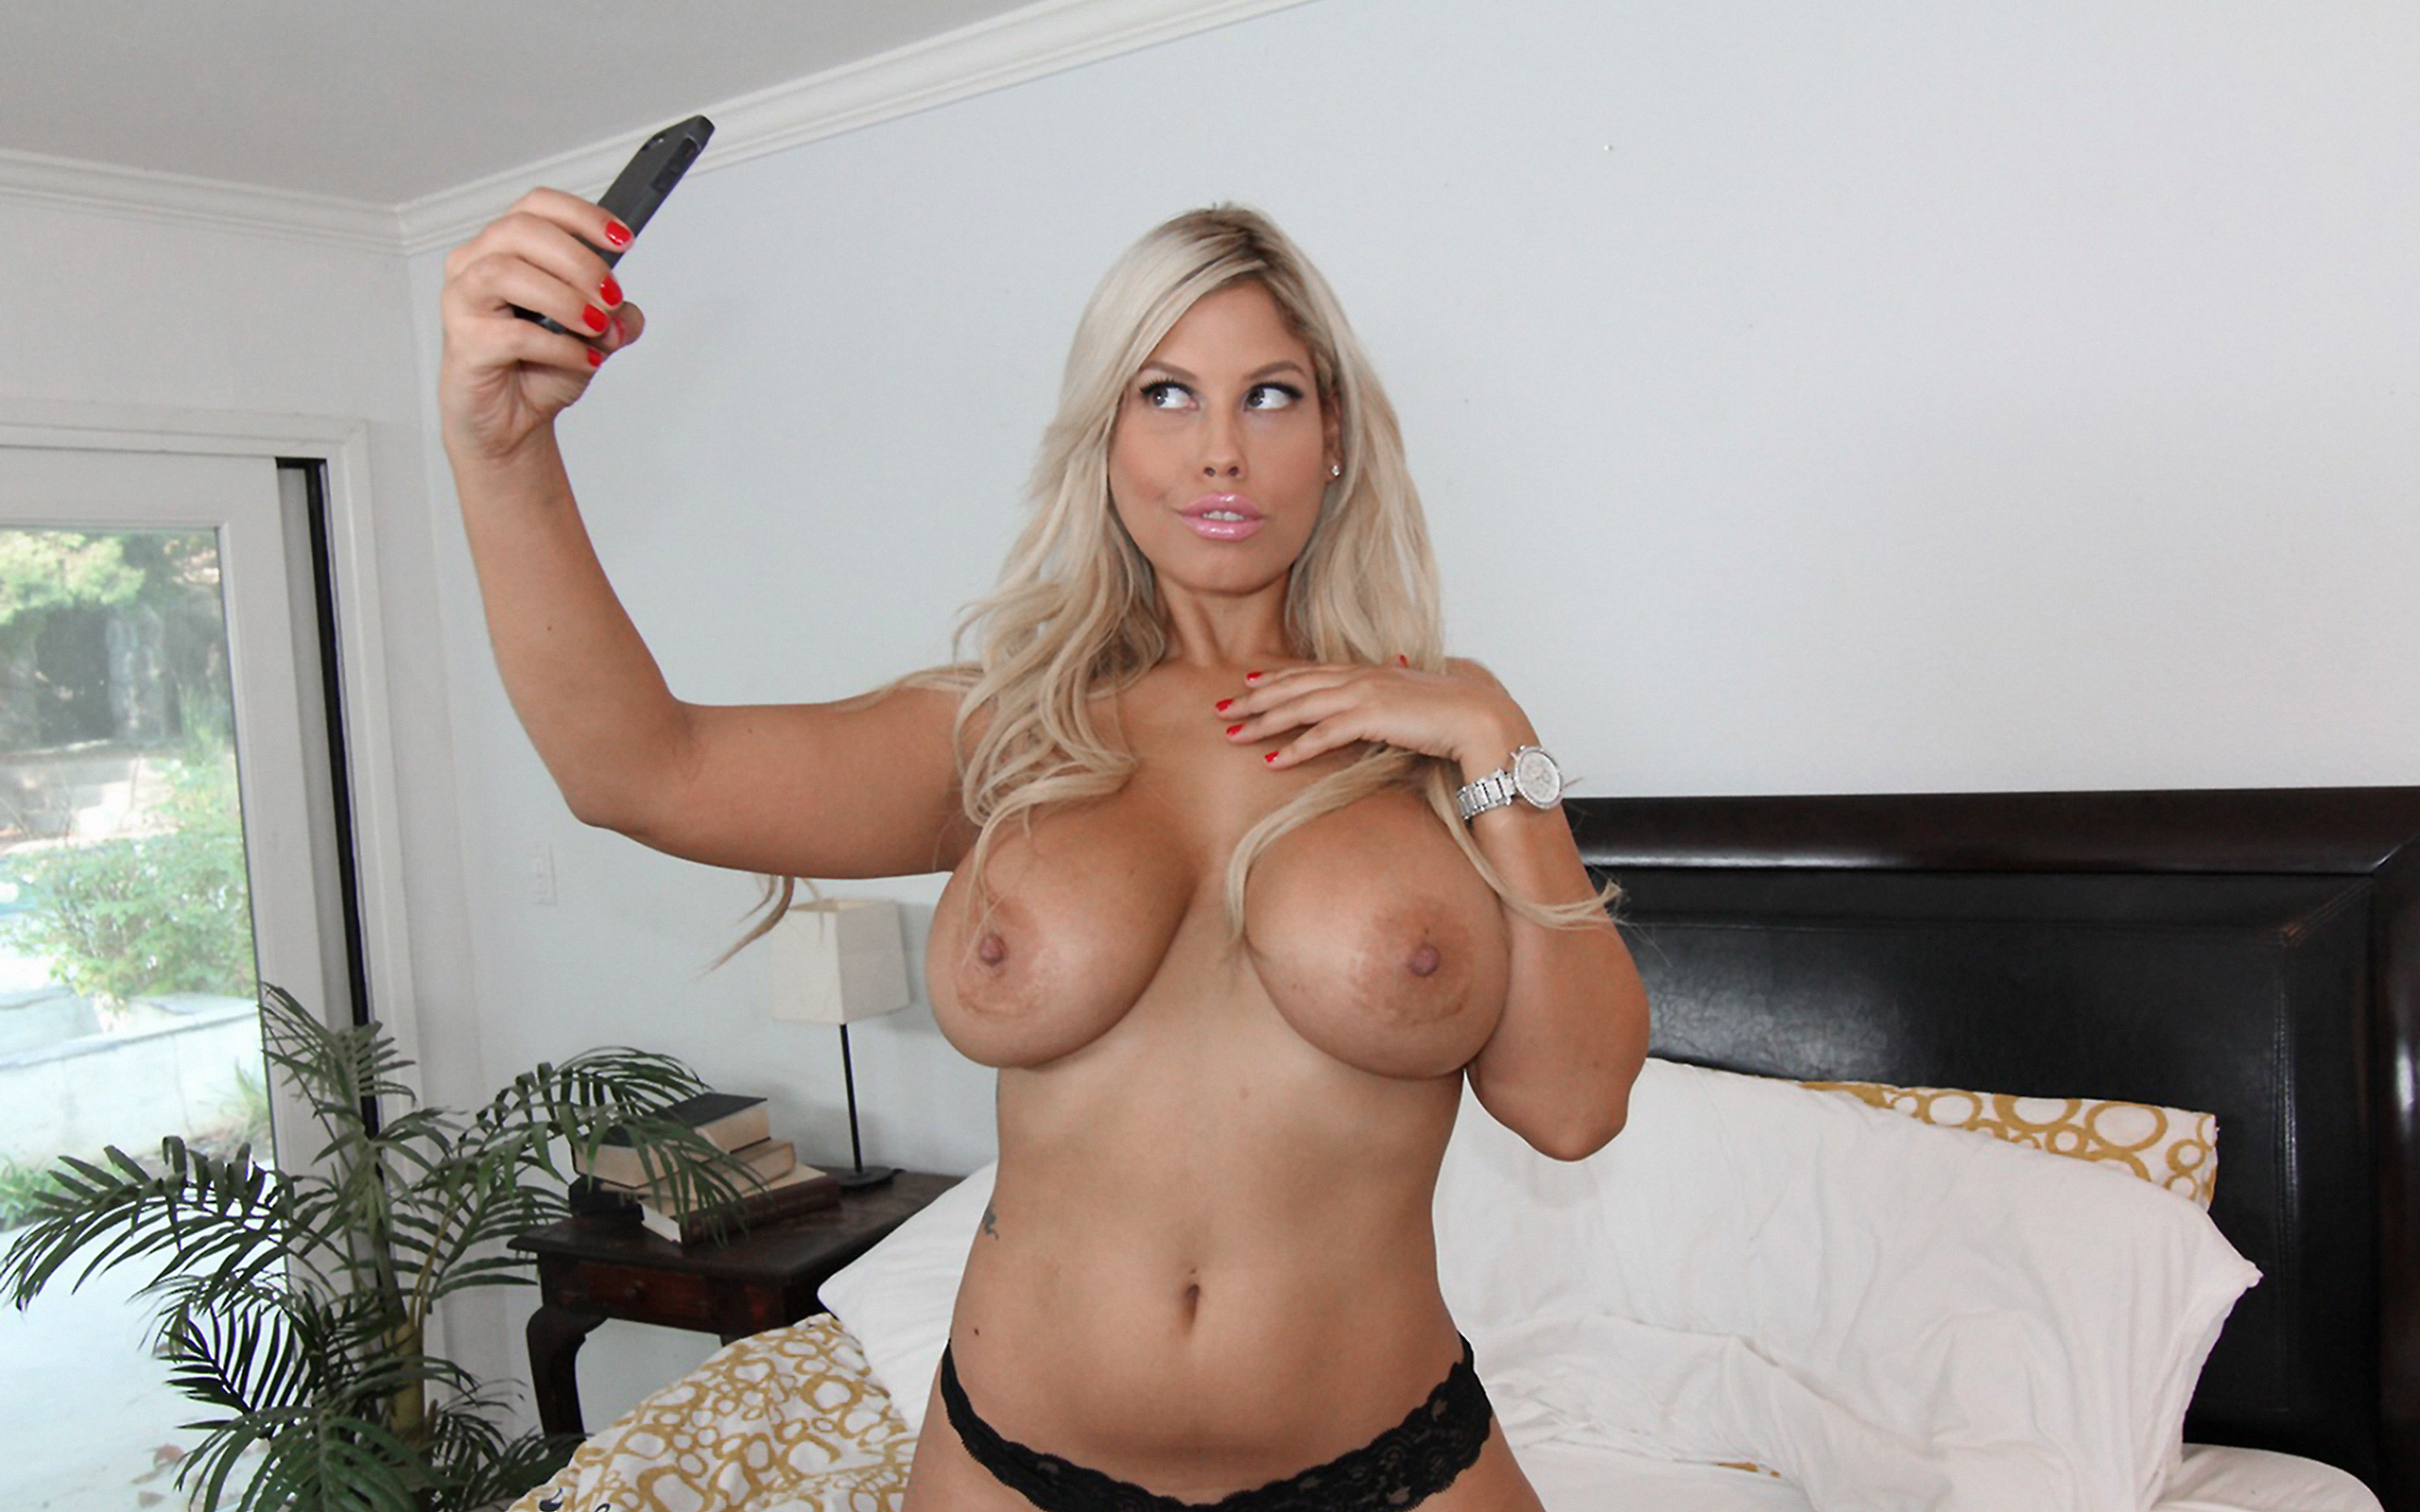 Milf huge tits video-5790